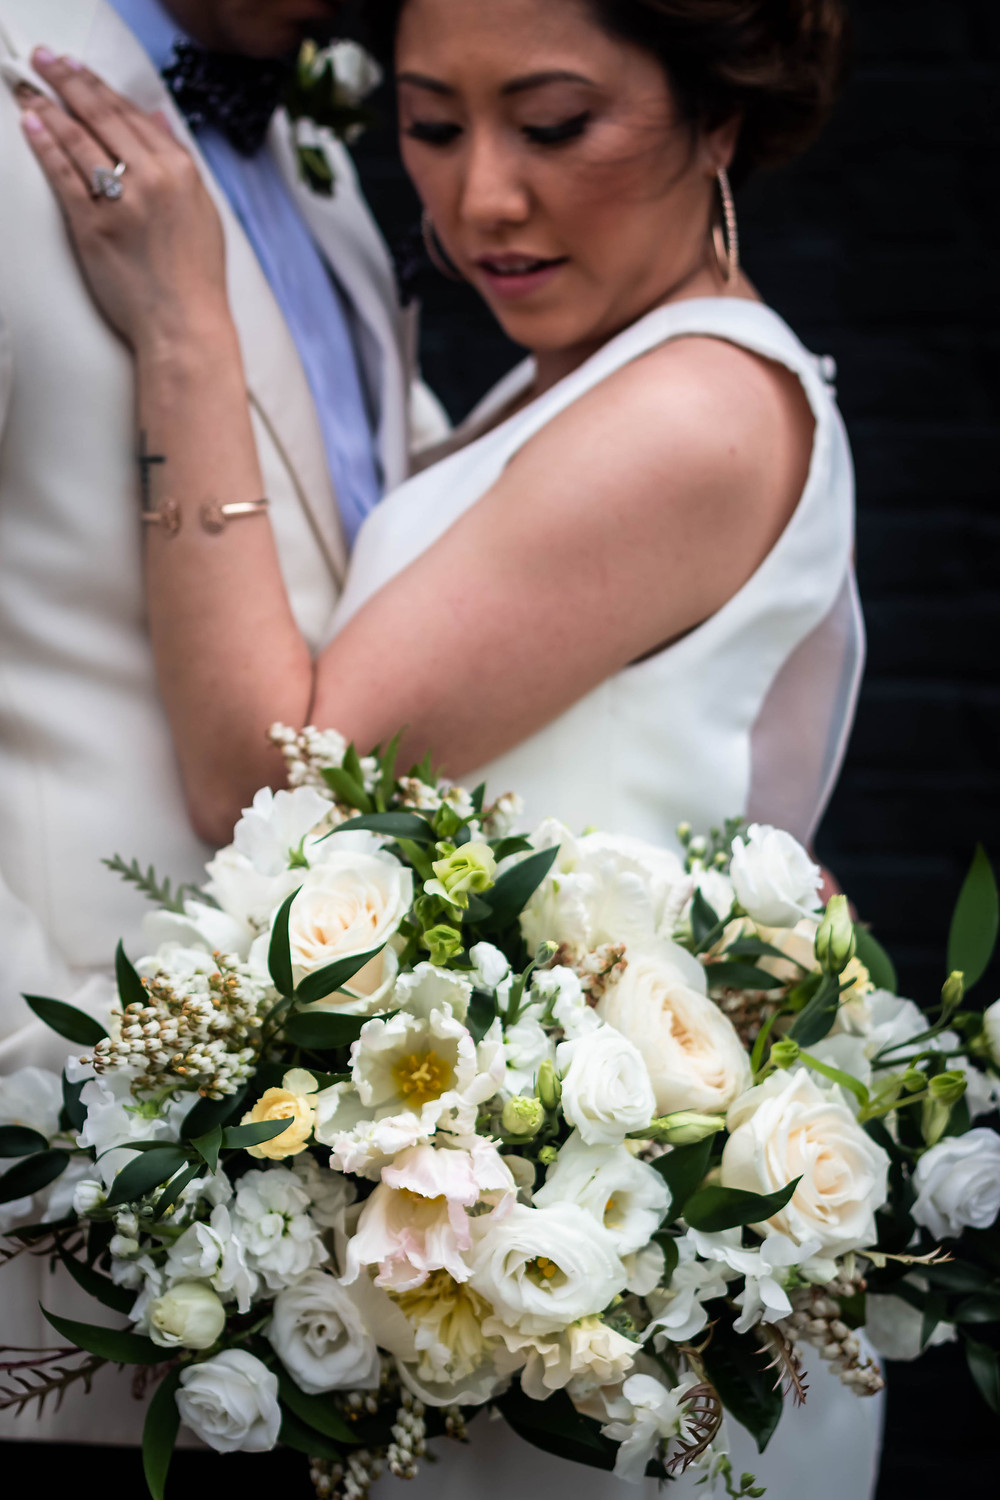 Detail shot of bridal bouquet with bride and groom in background at Noah Liff Opera Center